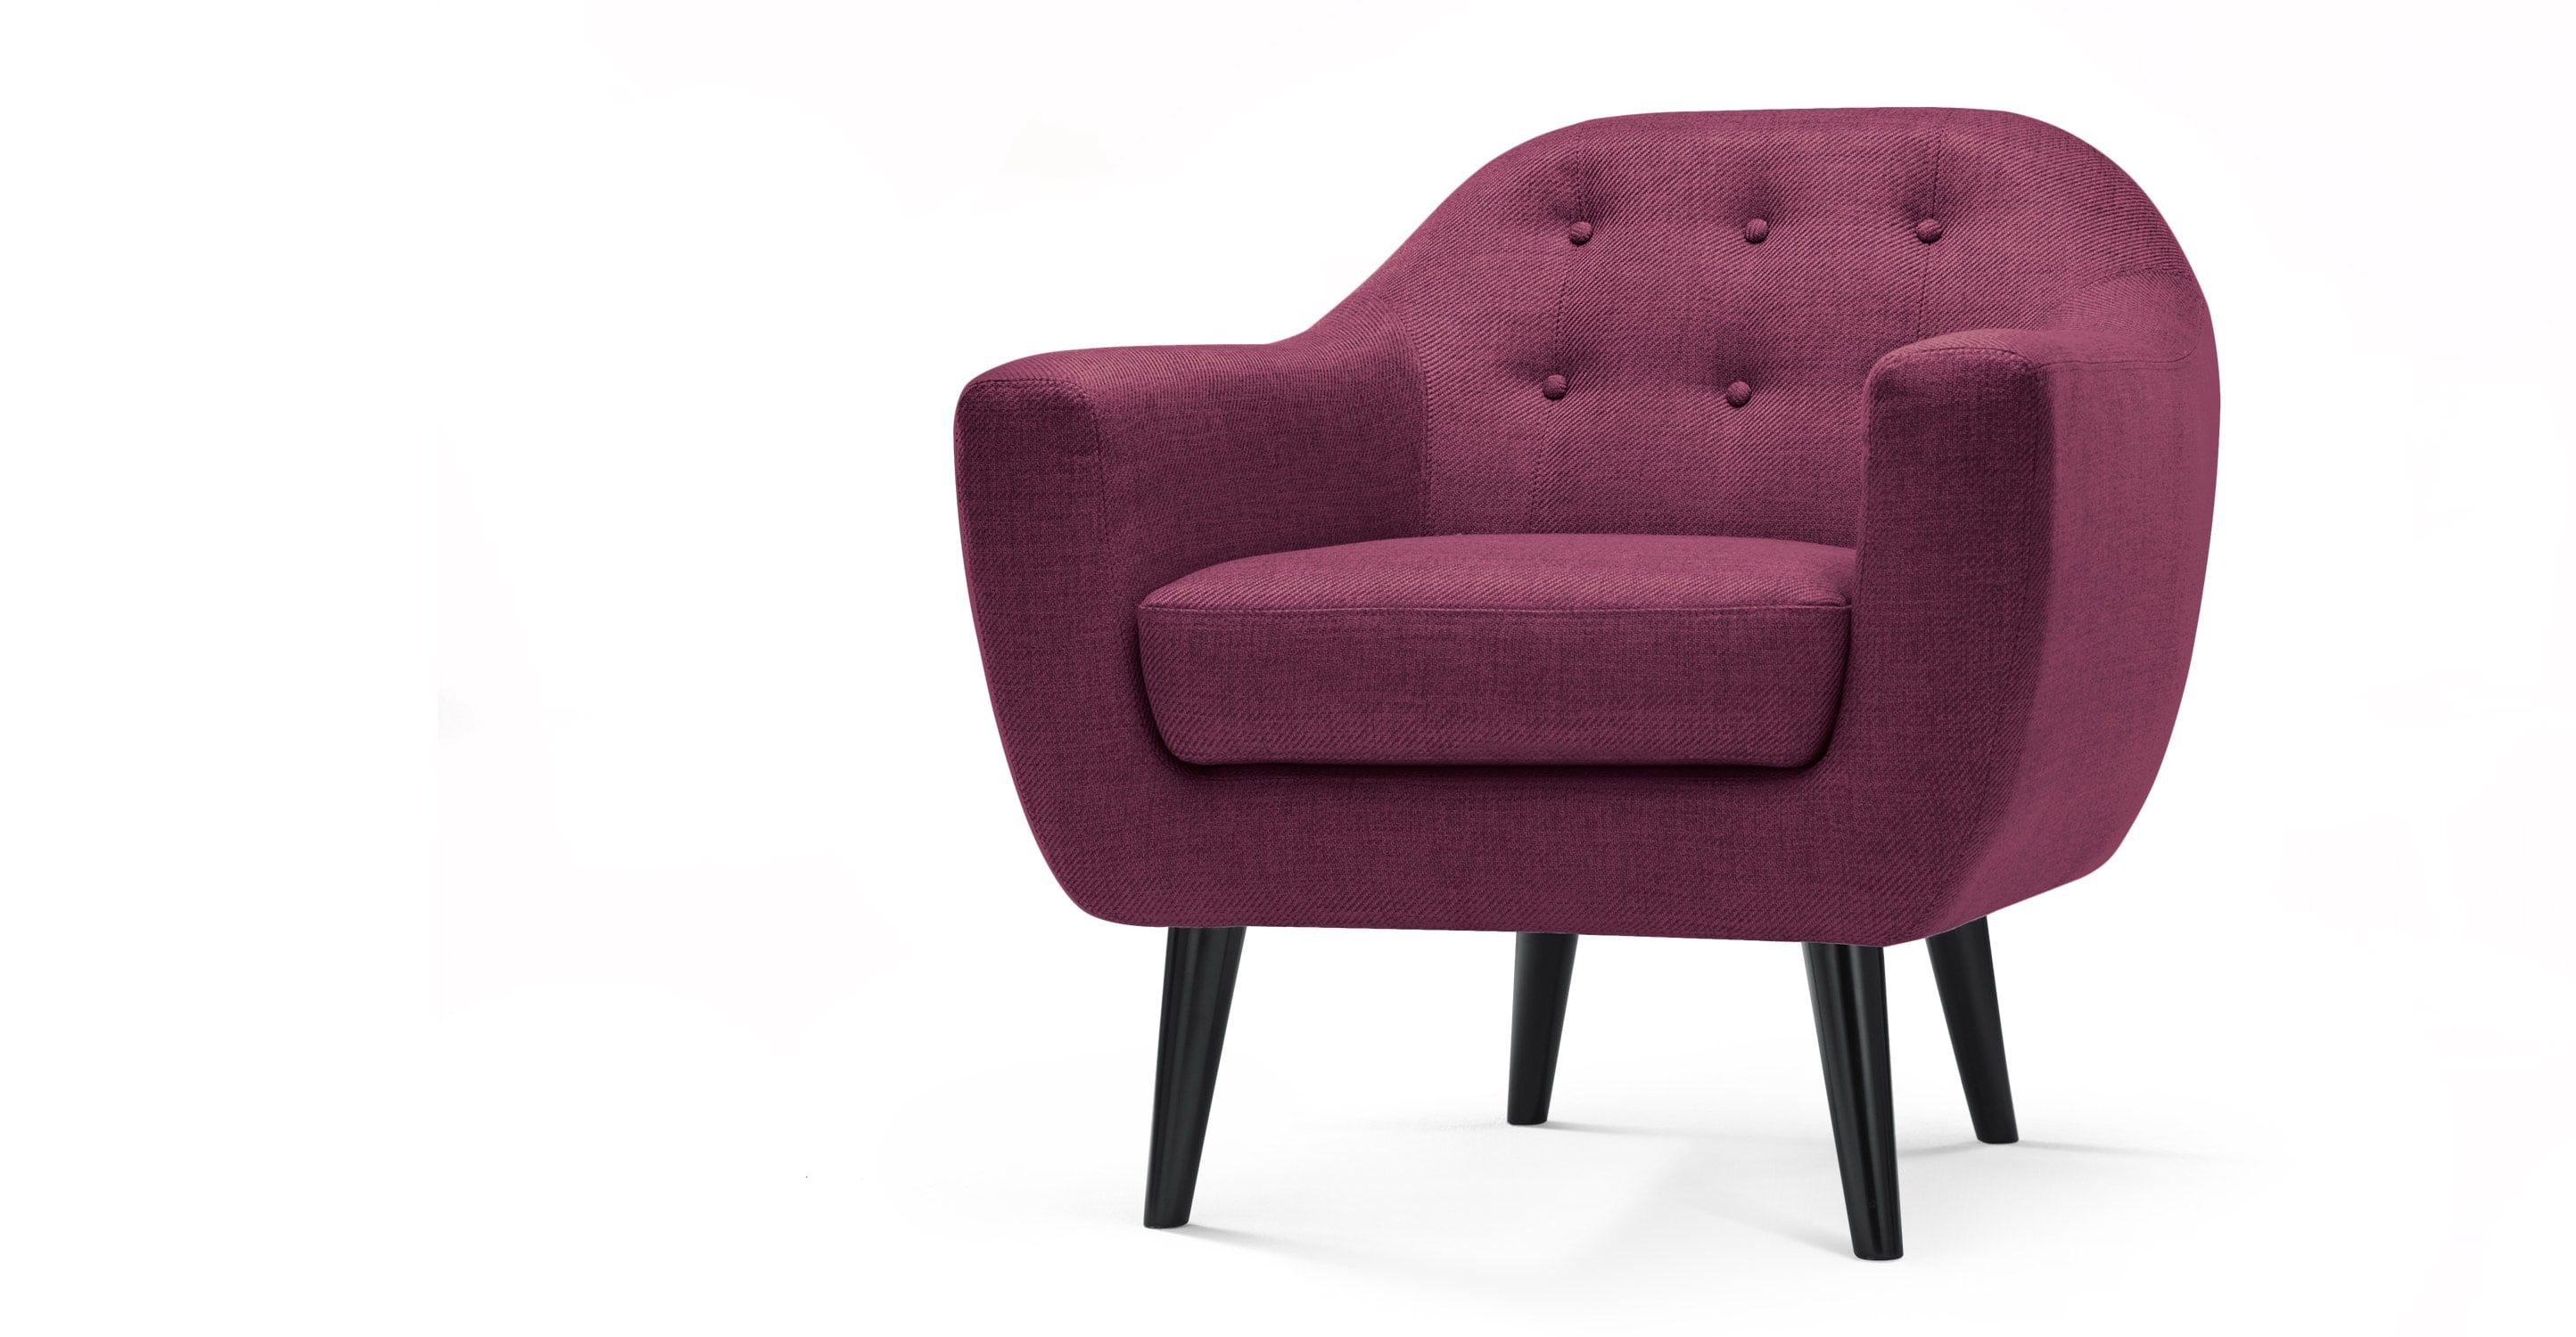 Relaxsessel Wohnzimmer ~ Ritchie sessel dunkellila plum purple armchairs and interiors